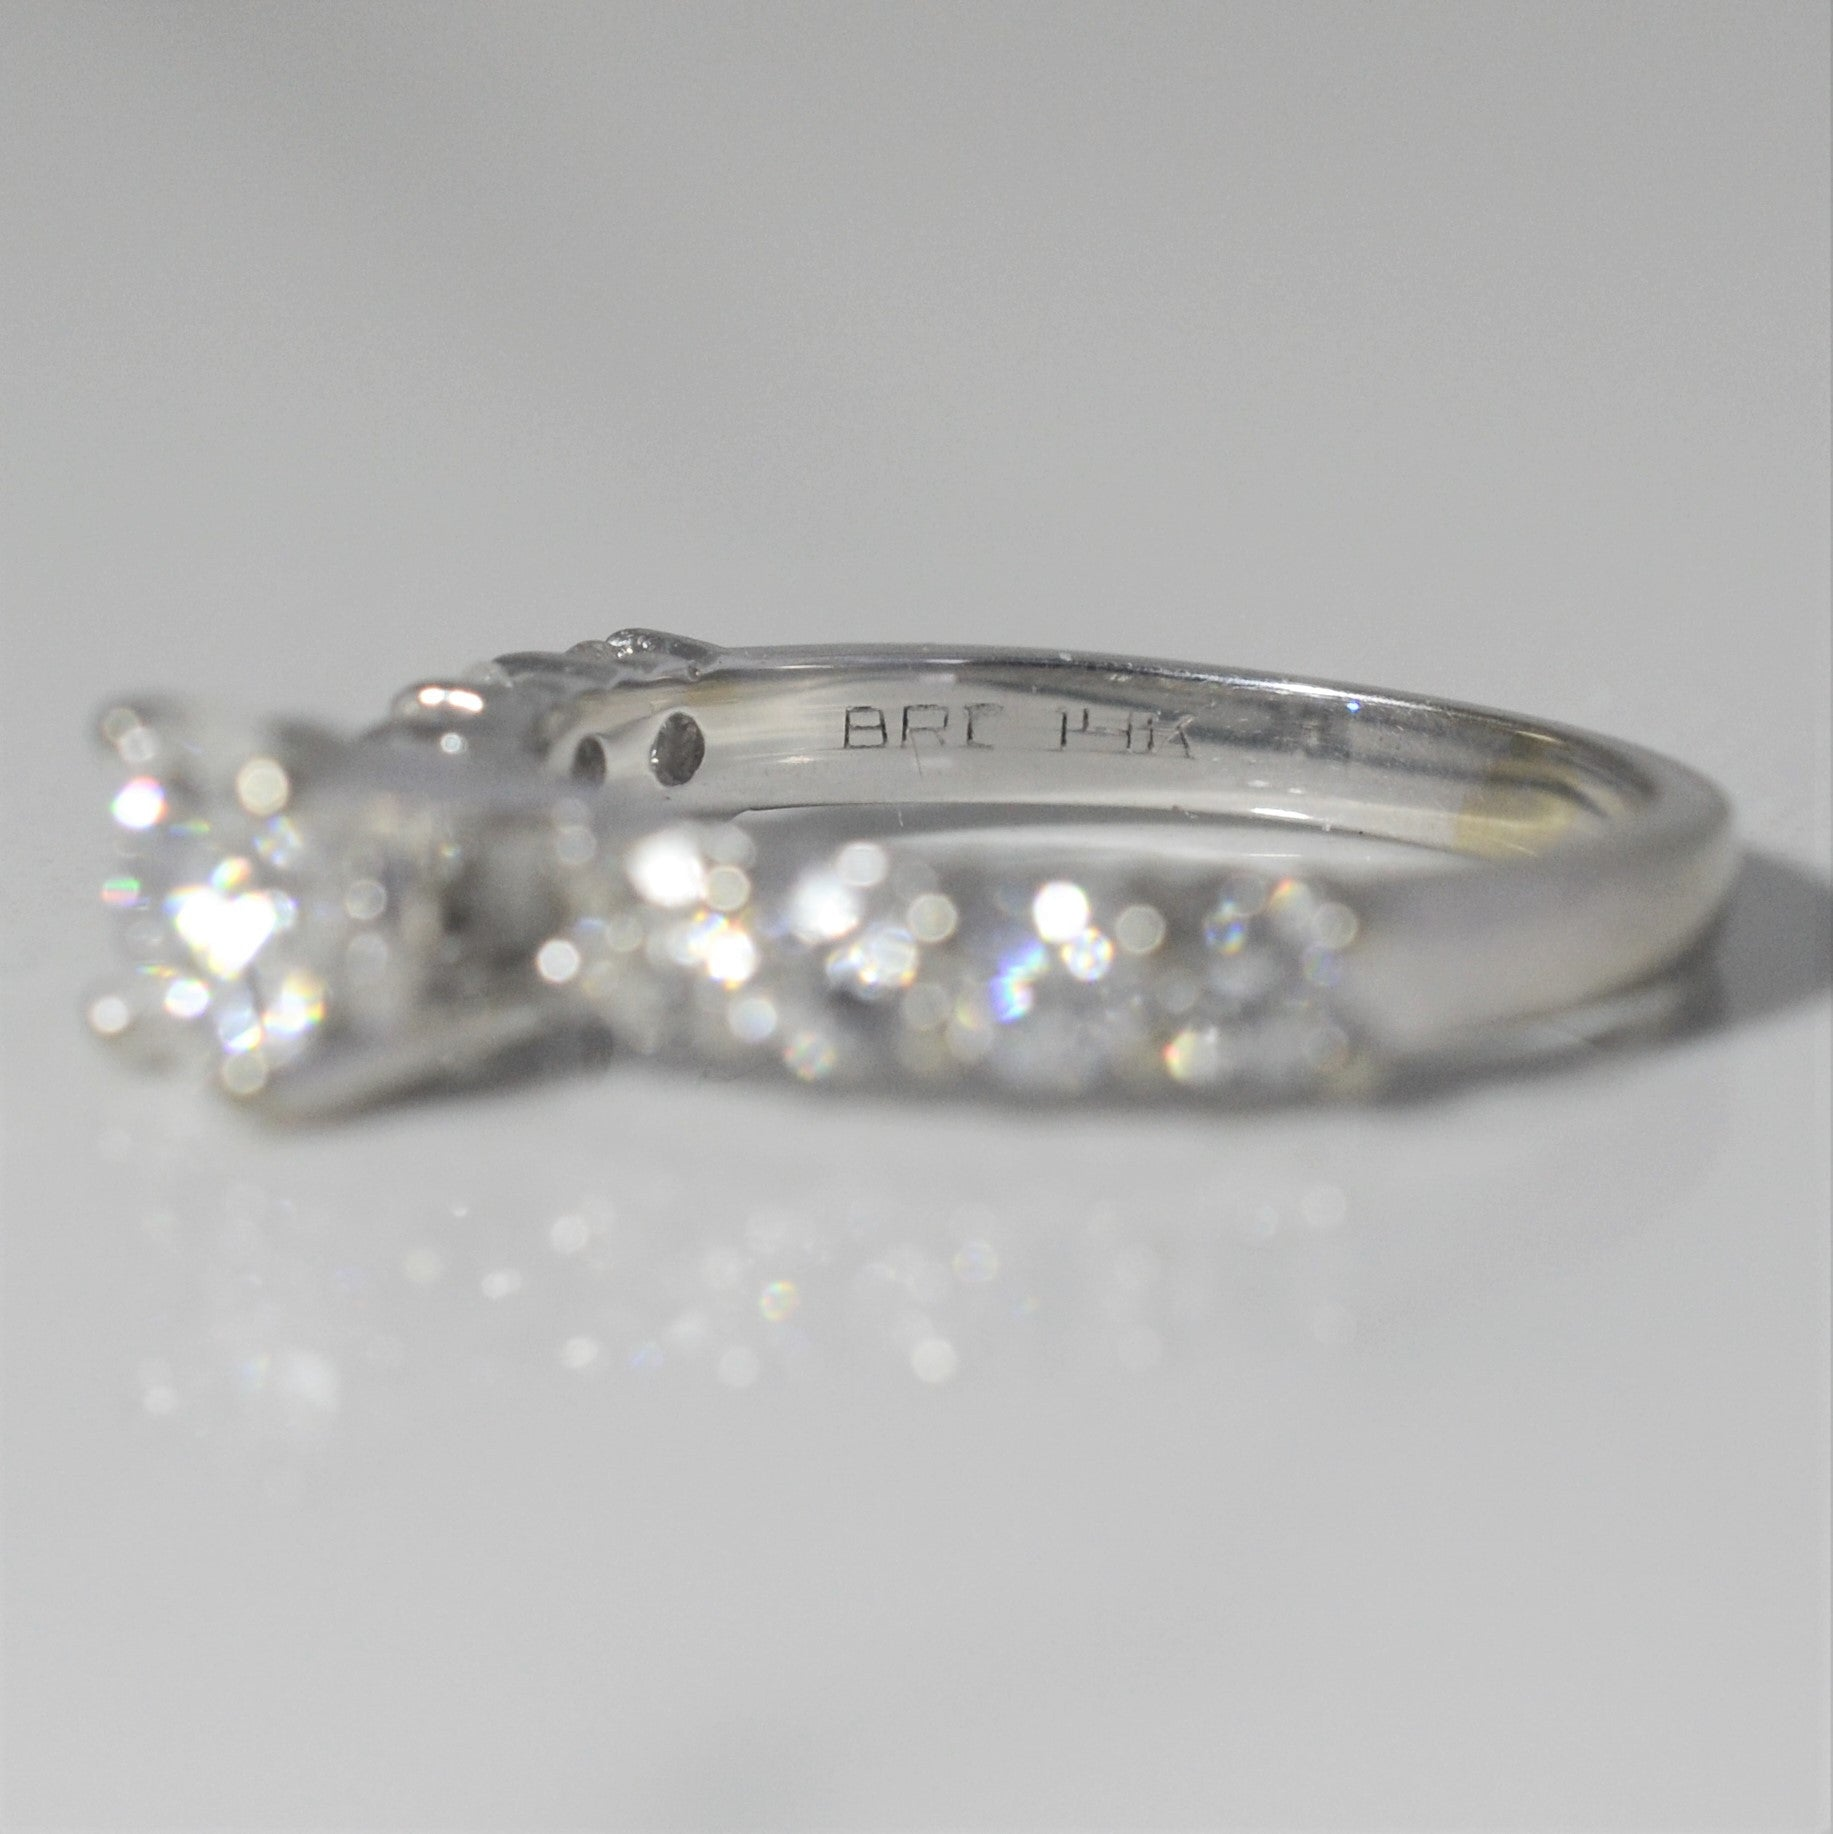 Pave Diamond Band Engagement Ring | 1.26 ctw, SZ 5.75 |